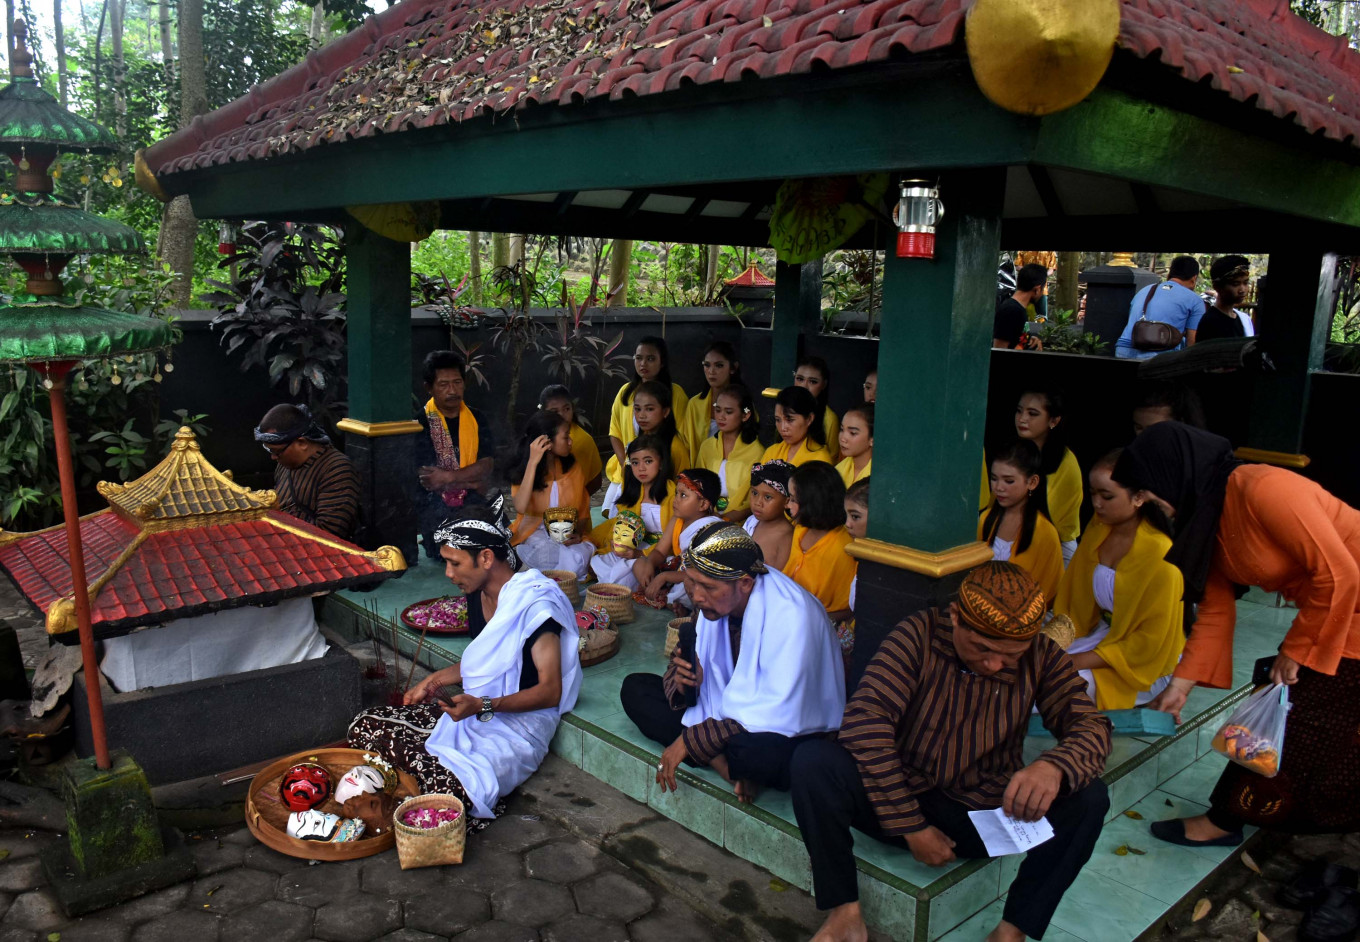 There were prayers and reading of tembang mocopat led by the funeral complex key master in preparation for the dance performance.